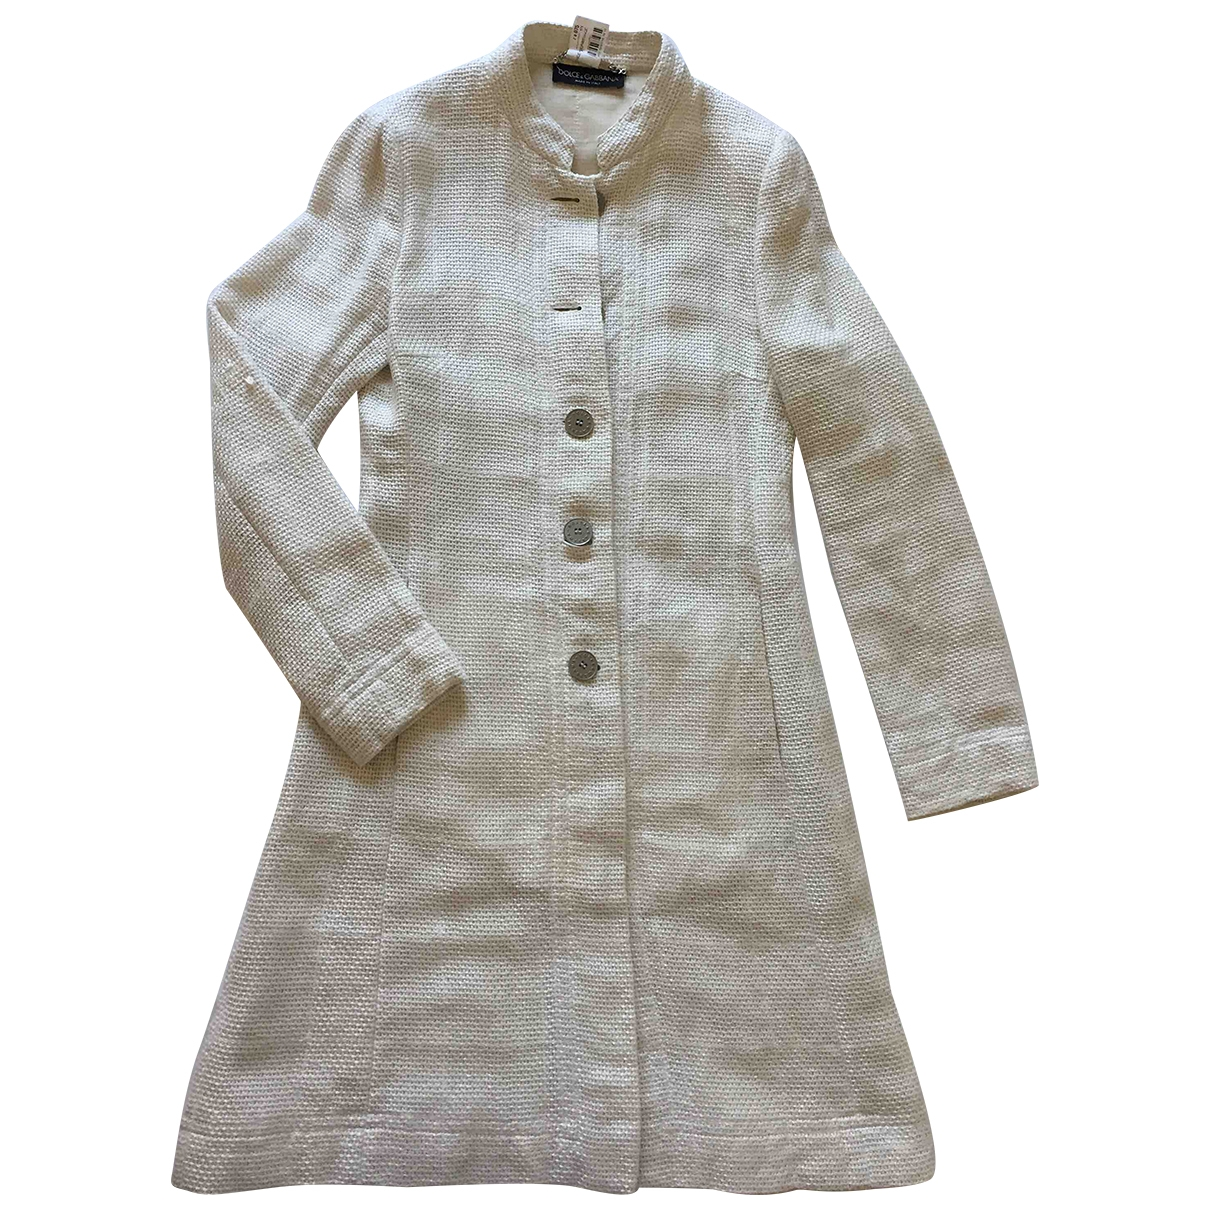 Dolce & Gabbana \N Ecru Linen coat for Women 44 IT